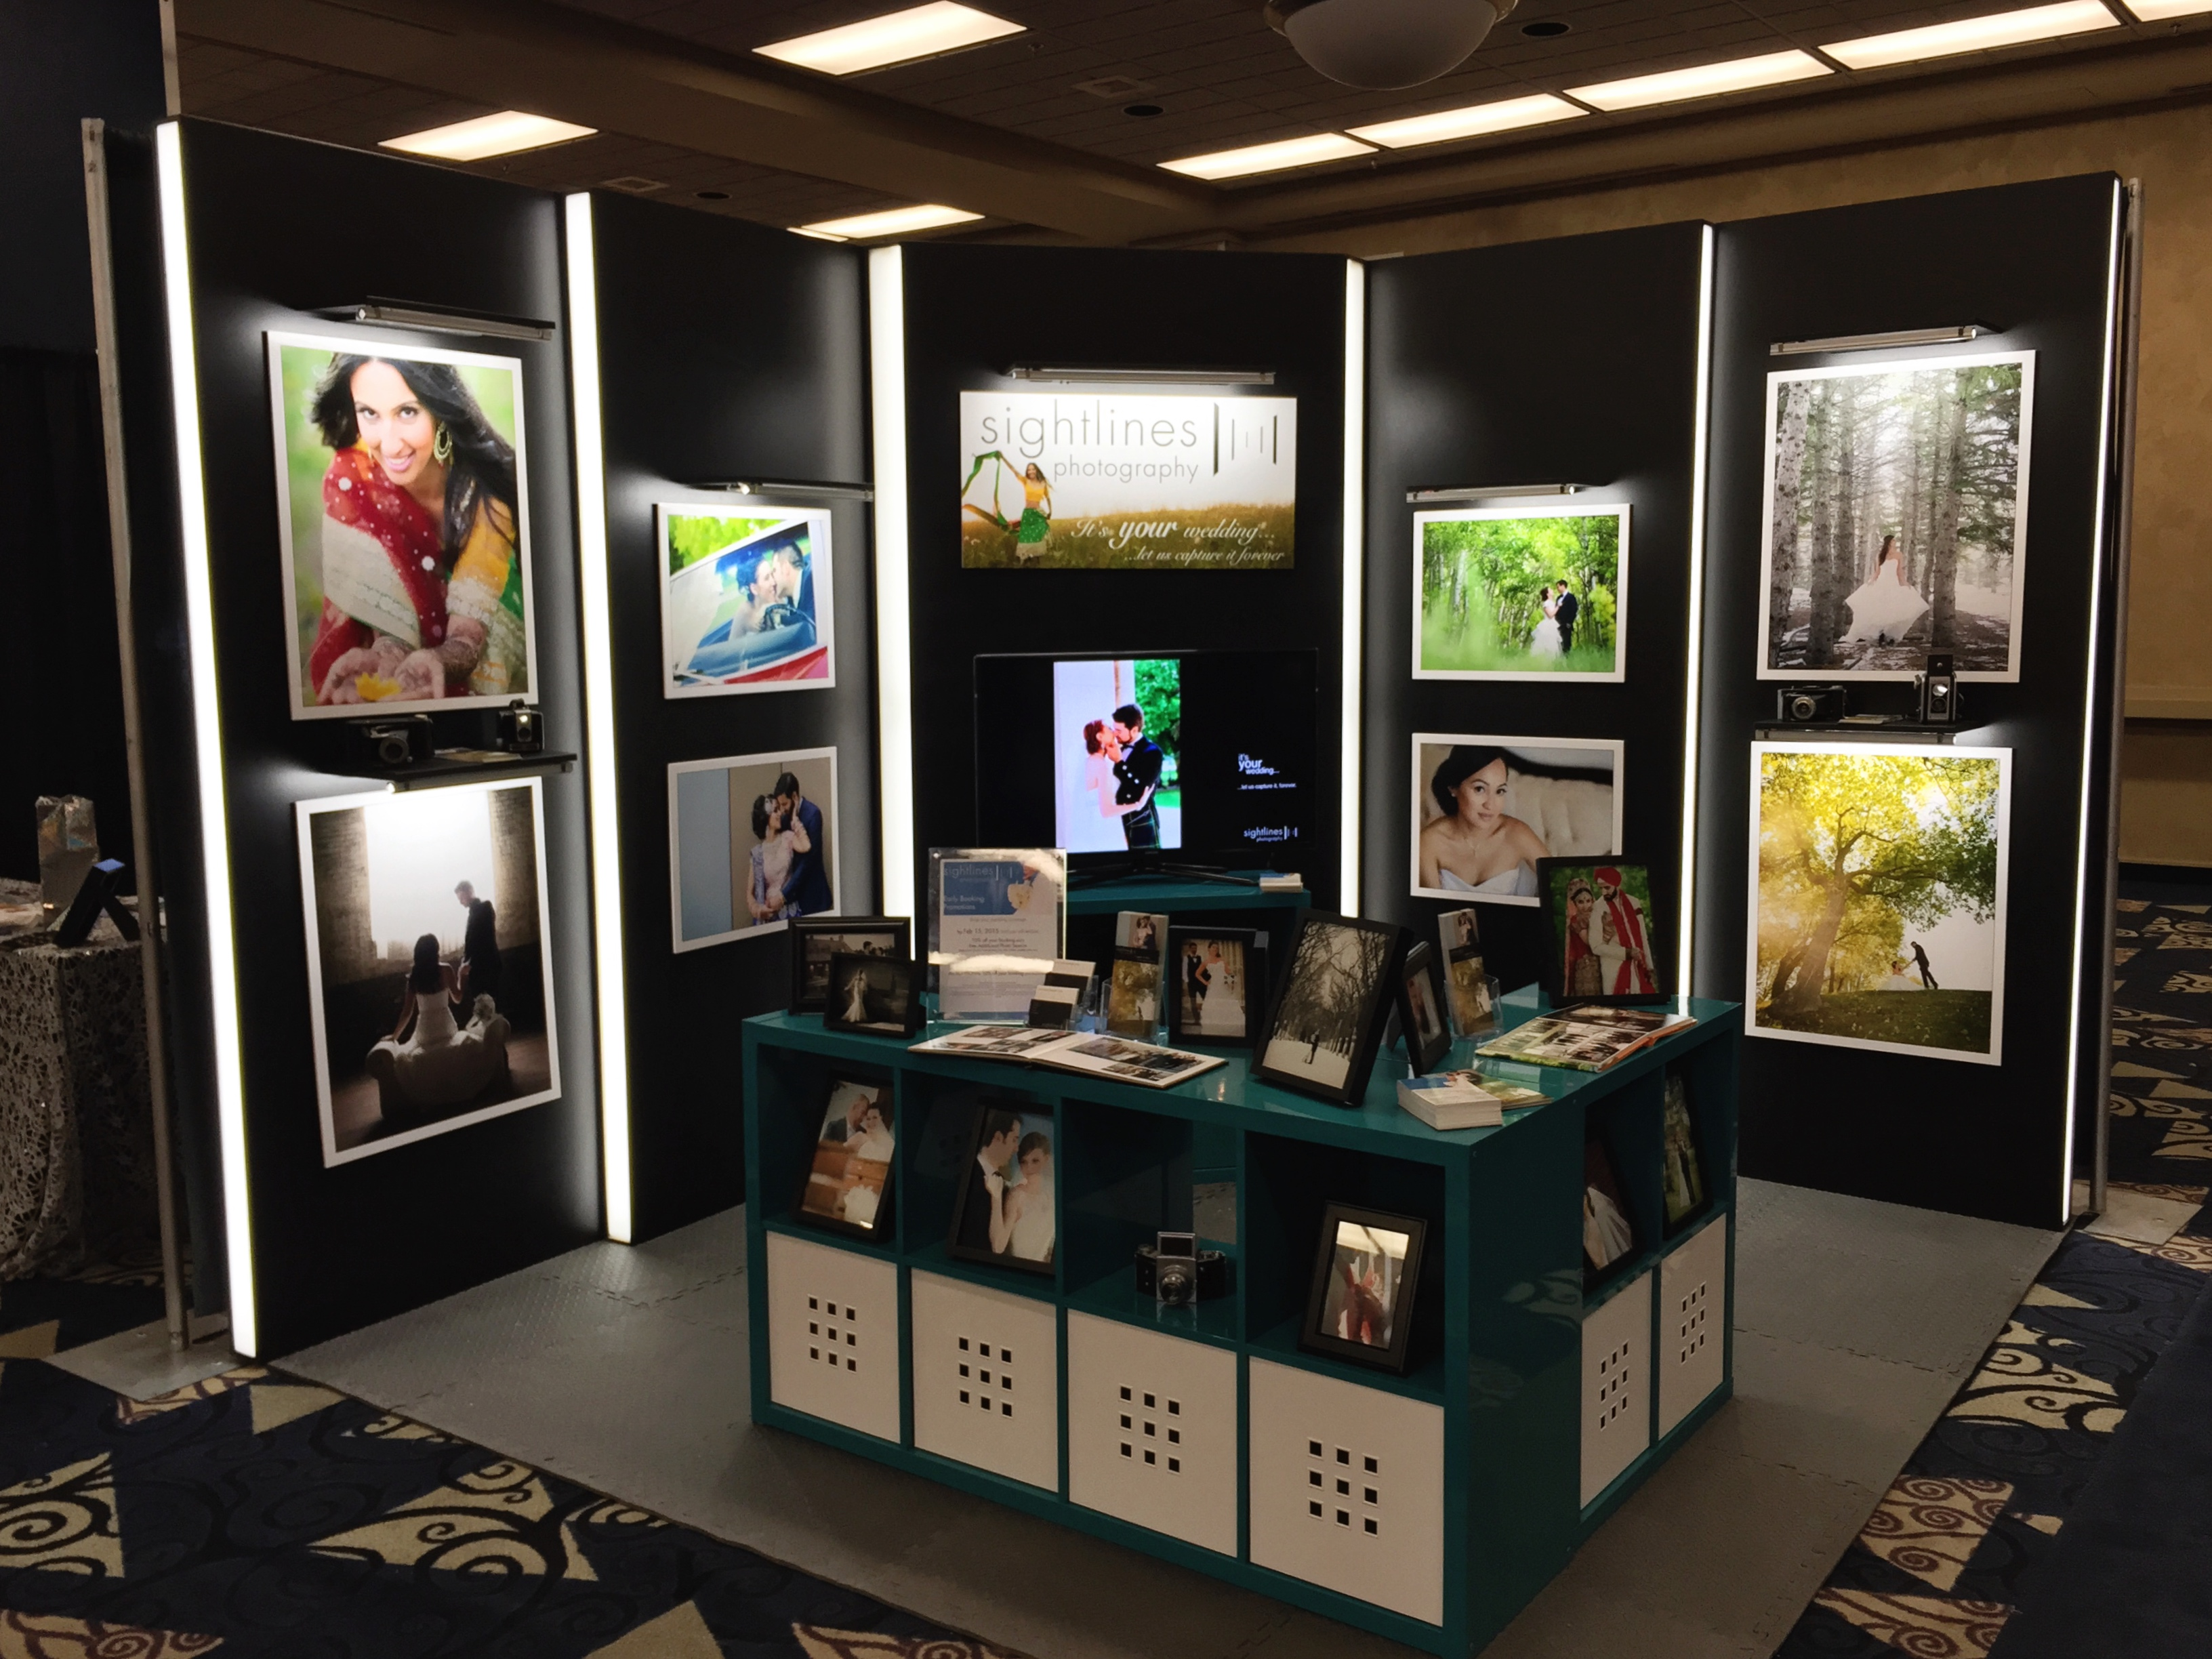 Photography Exhibition Exhibition Lighting Design Sightlines Photography Booth S3